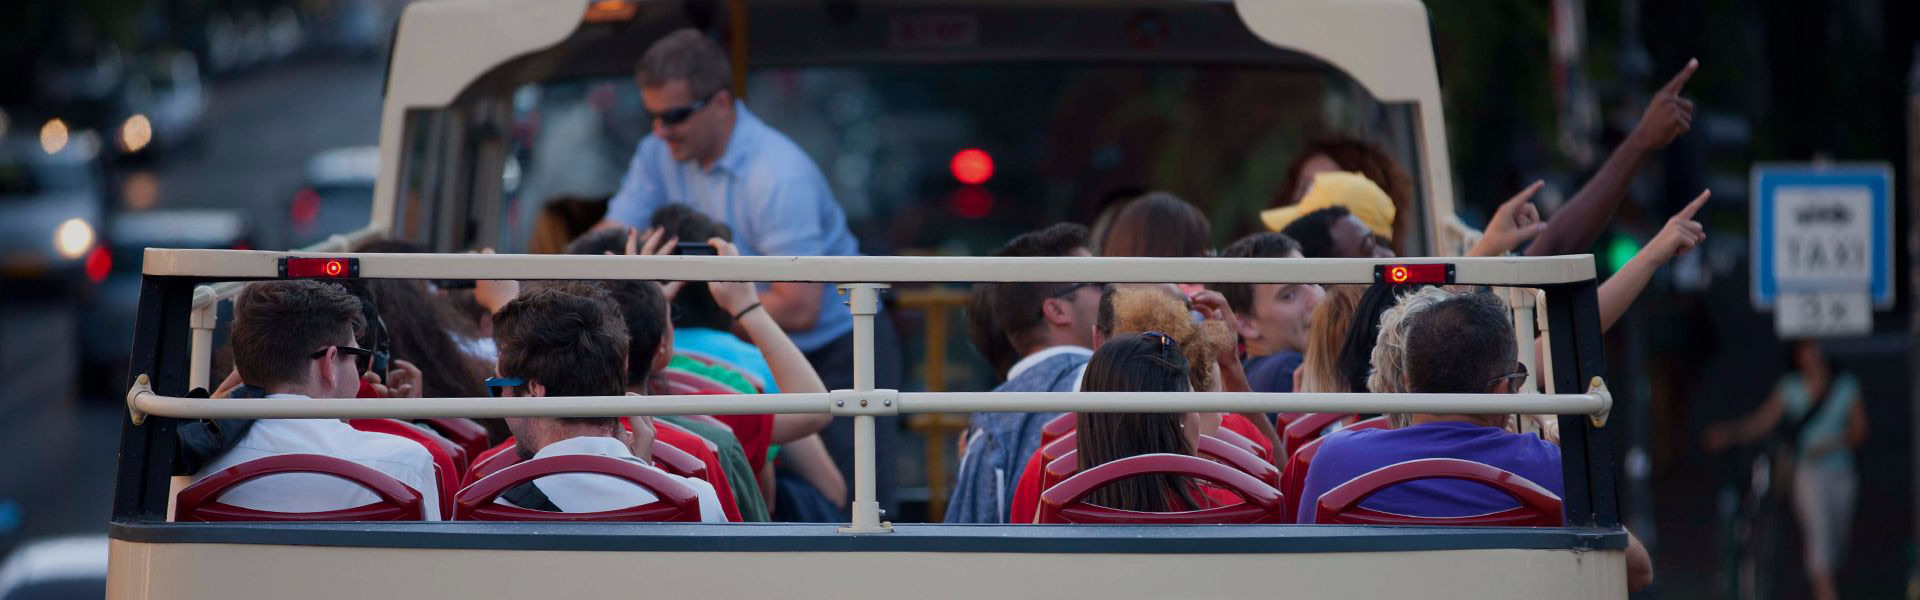 Passengers on a bus tour in Budapest